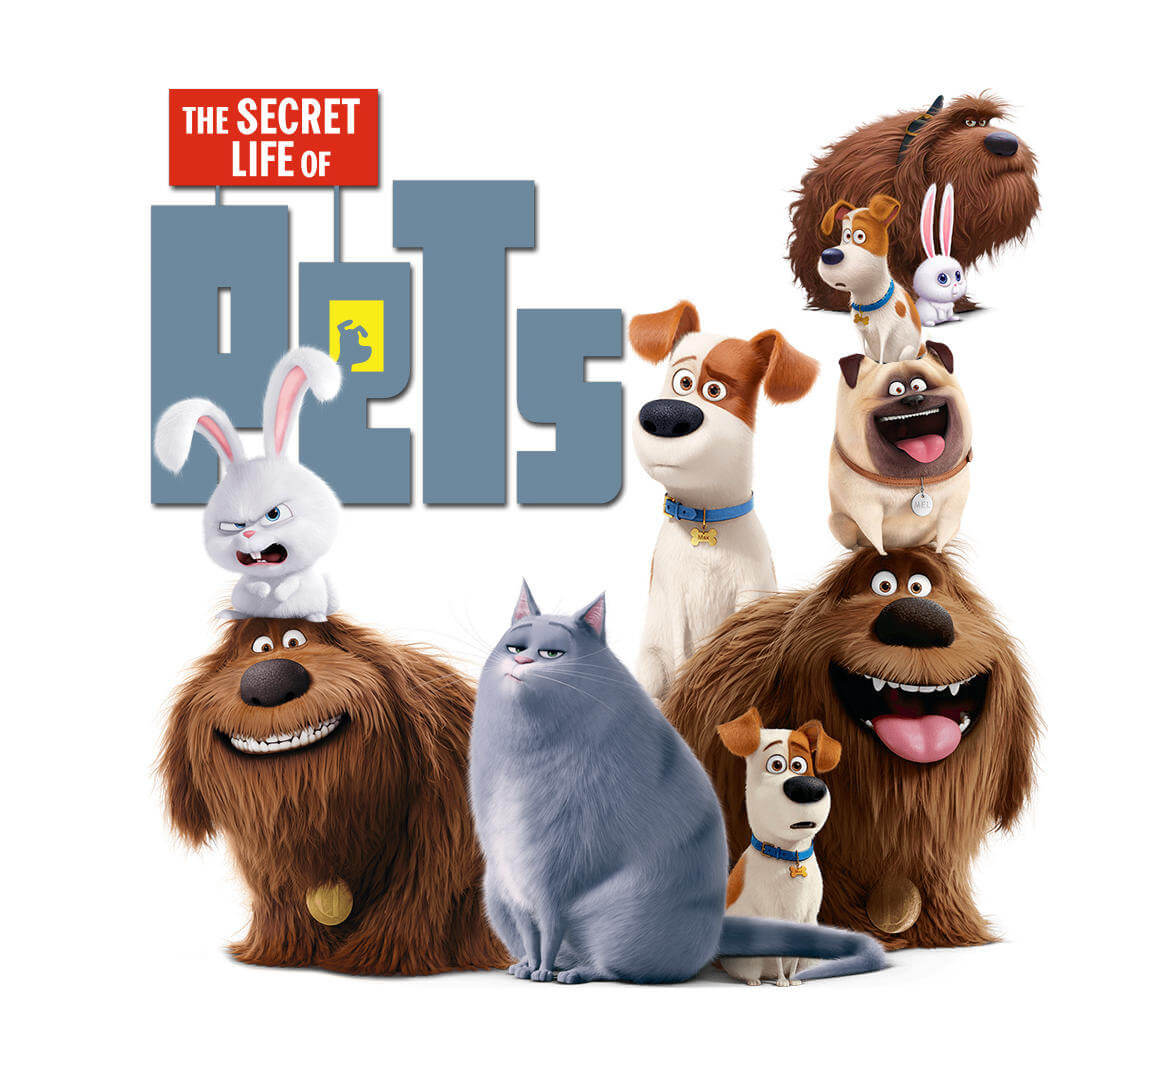 Mini-Oscars: for the best children's movies of 2016 voted on by children | Halfpint Design - Secret Life of Pets